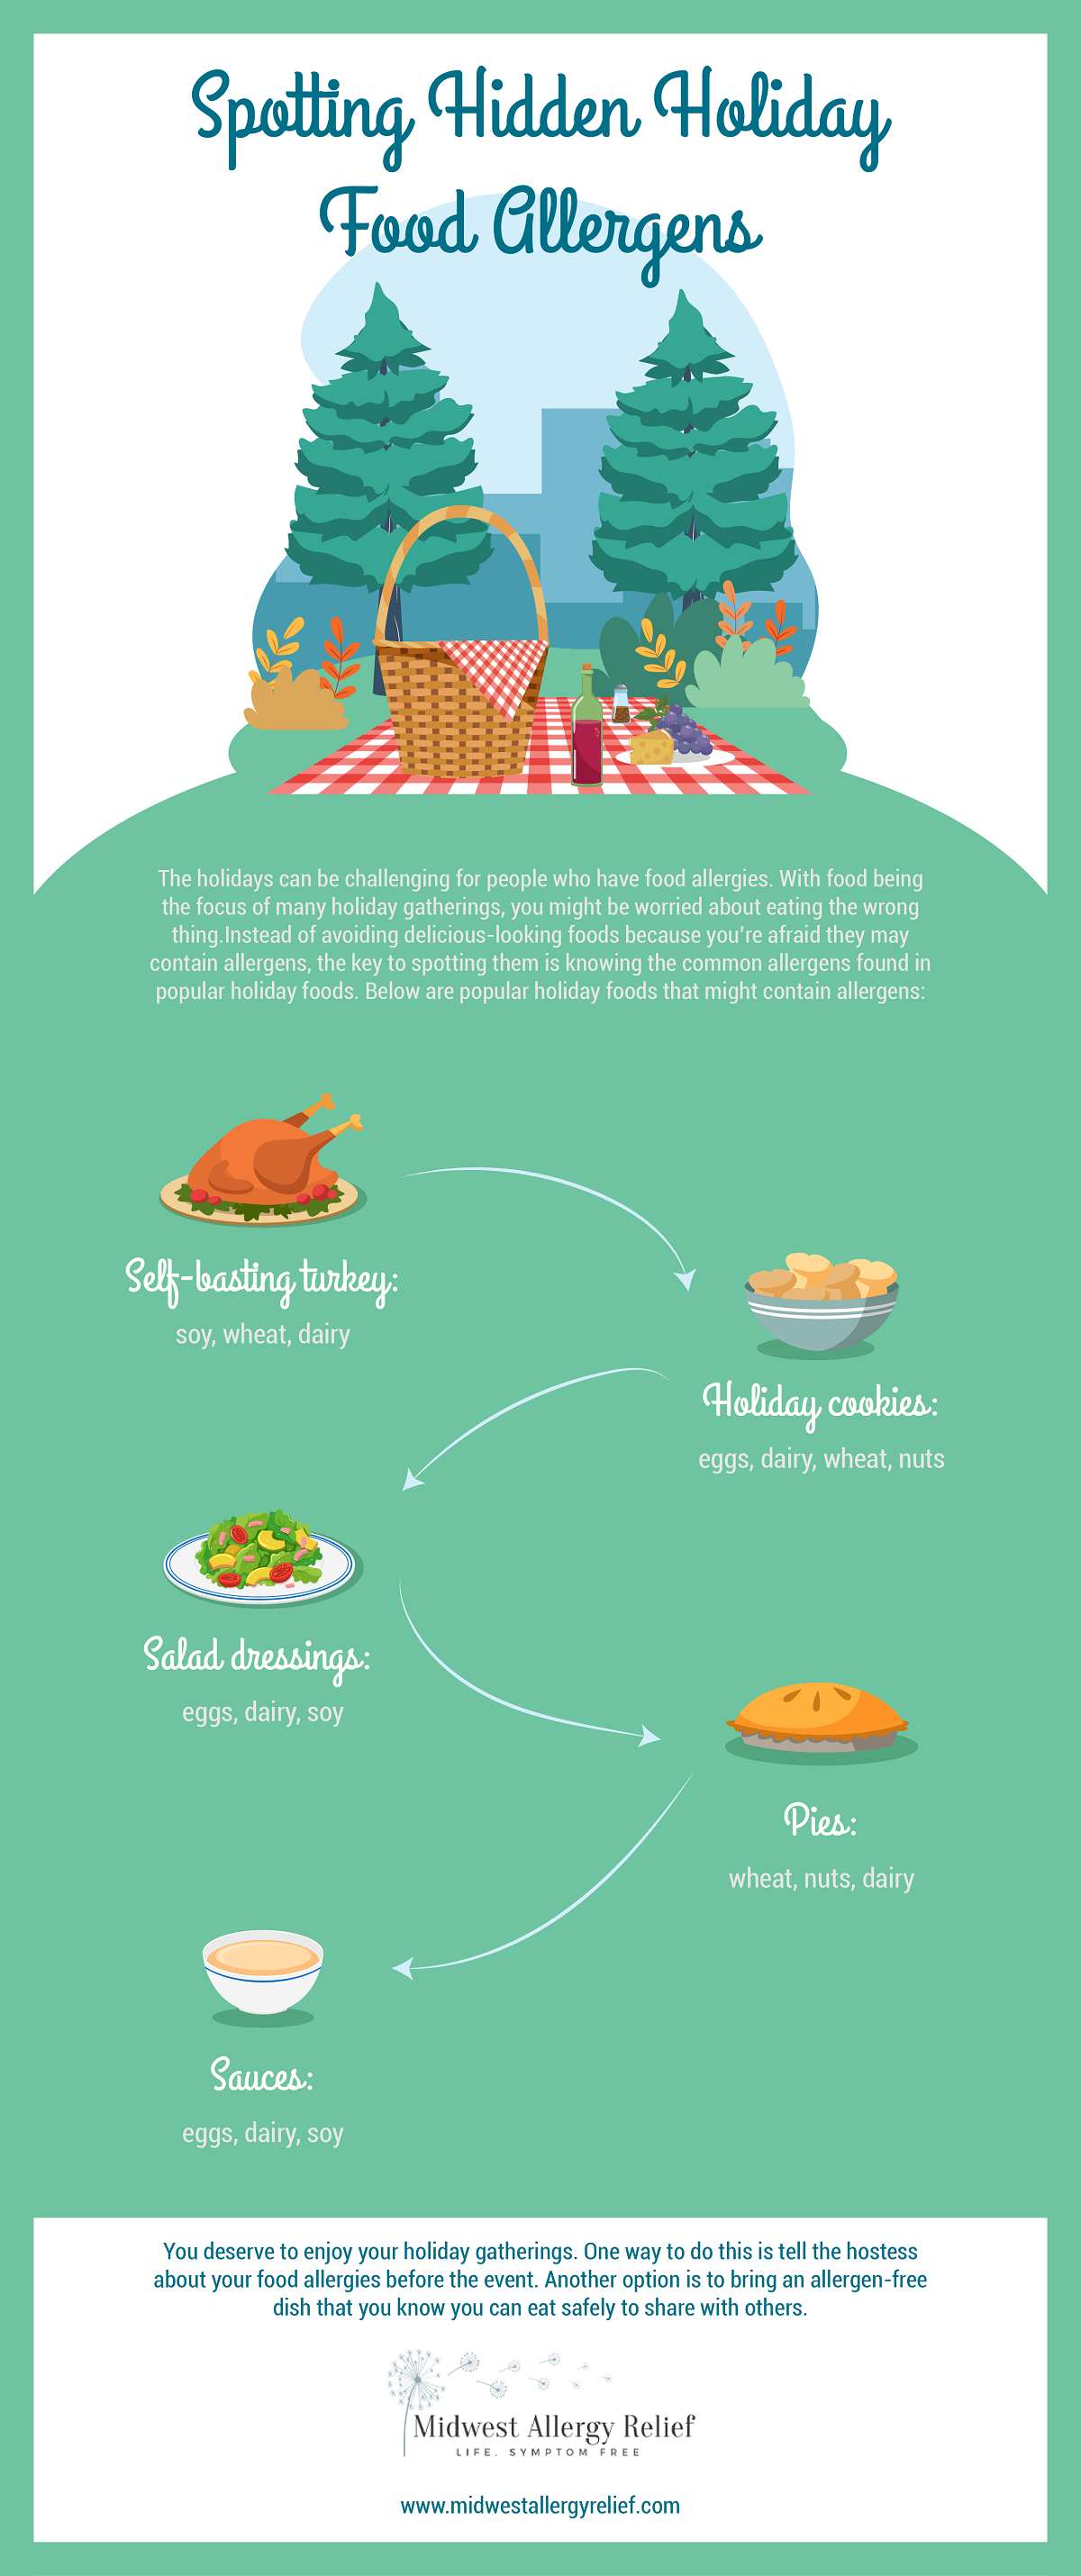 Spotting Hidden Holiday Food Allergens